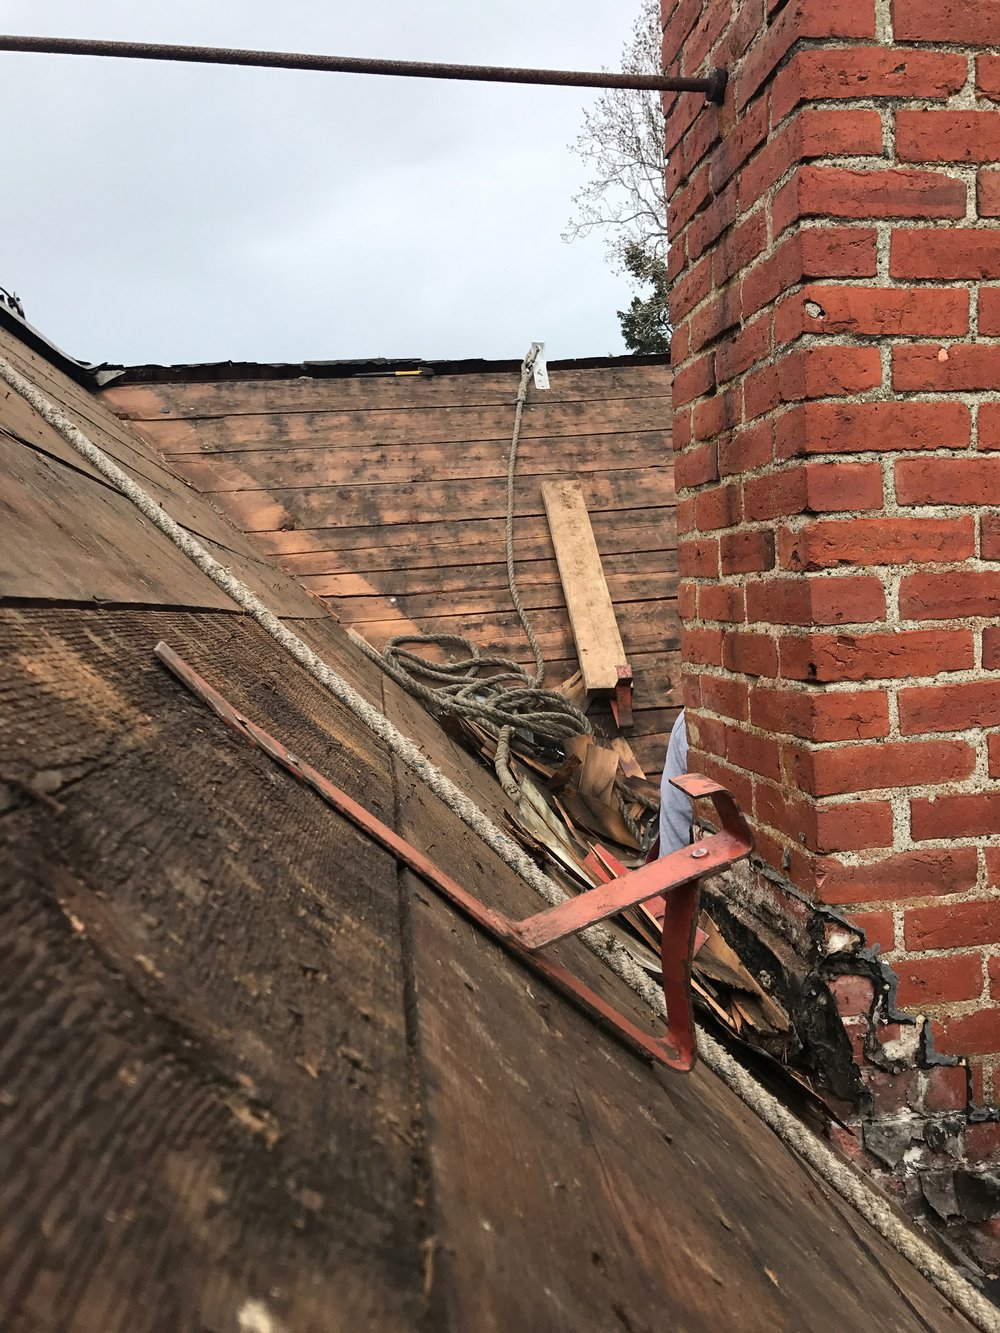 Part of the roof when shingles were removed